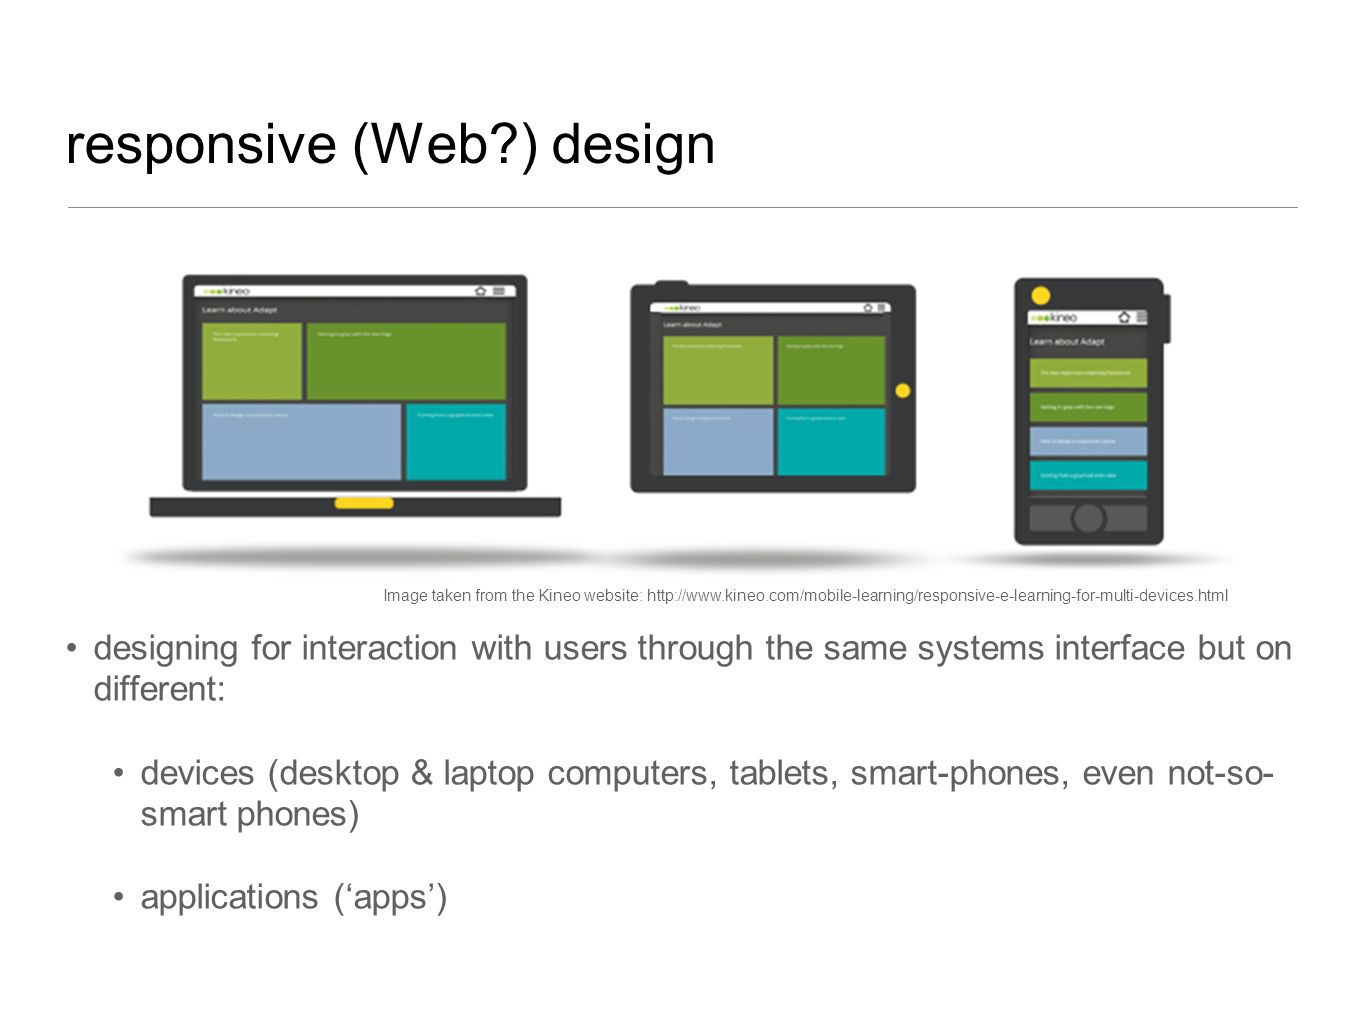 responsive (Web?) design designing for interaction with users through the same systems interface but on different: devices (desktop & laptop computers